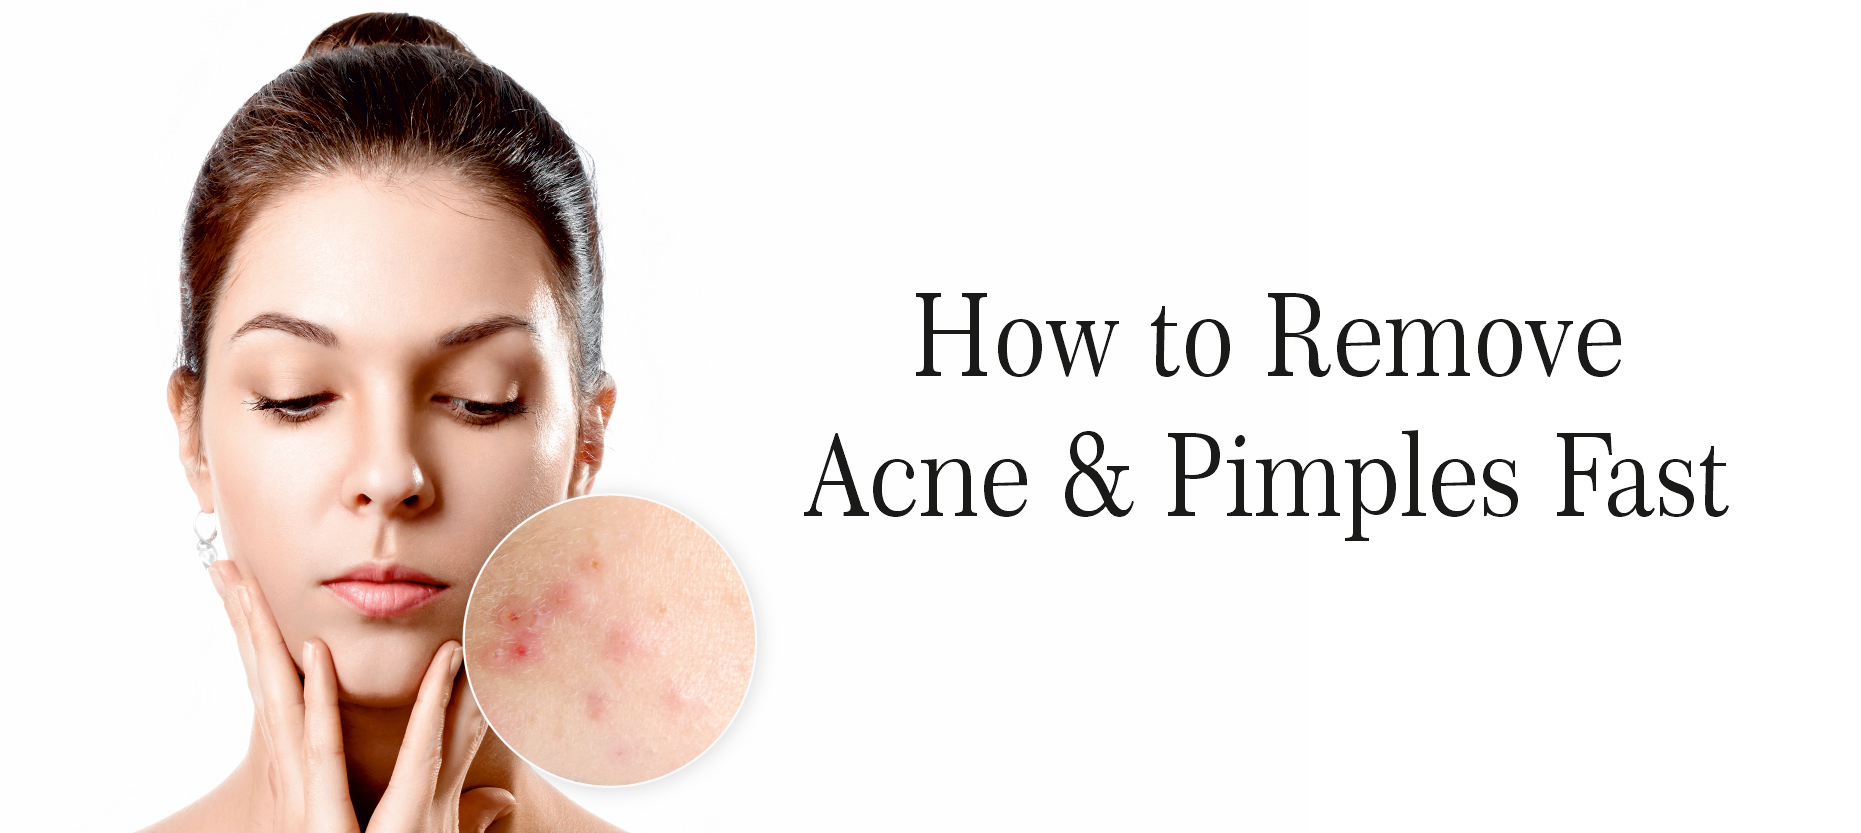 How to Remove Acne & Pimples Fast